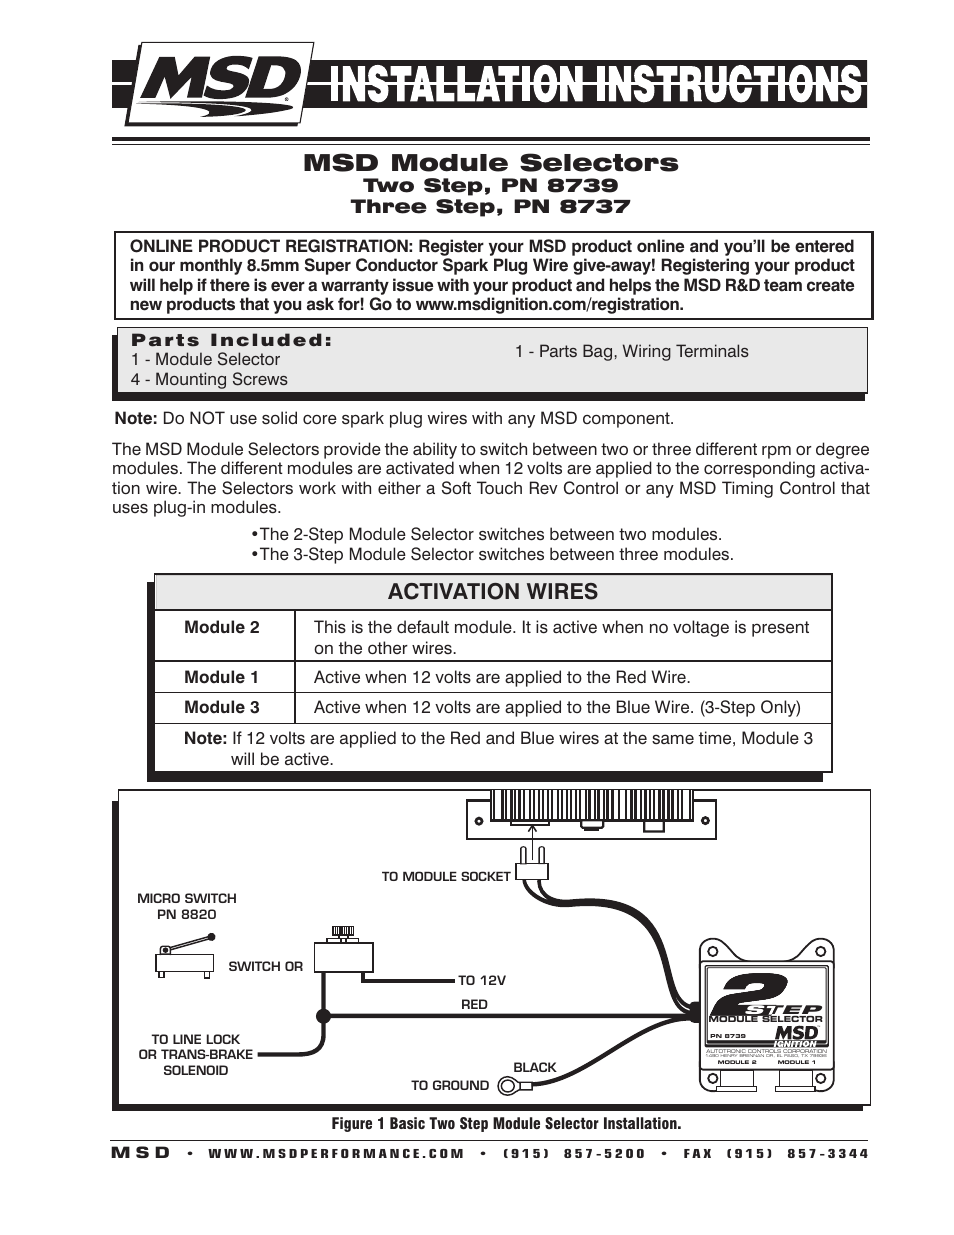 msd 8739 two step module selector installation page1?resize\\\\\\\=665%2C861 msd 6m 2 wiring diagram msd fuel pump, msd wiring book, msd msd 7al 3 wiring diagram at cos-gaming.co